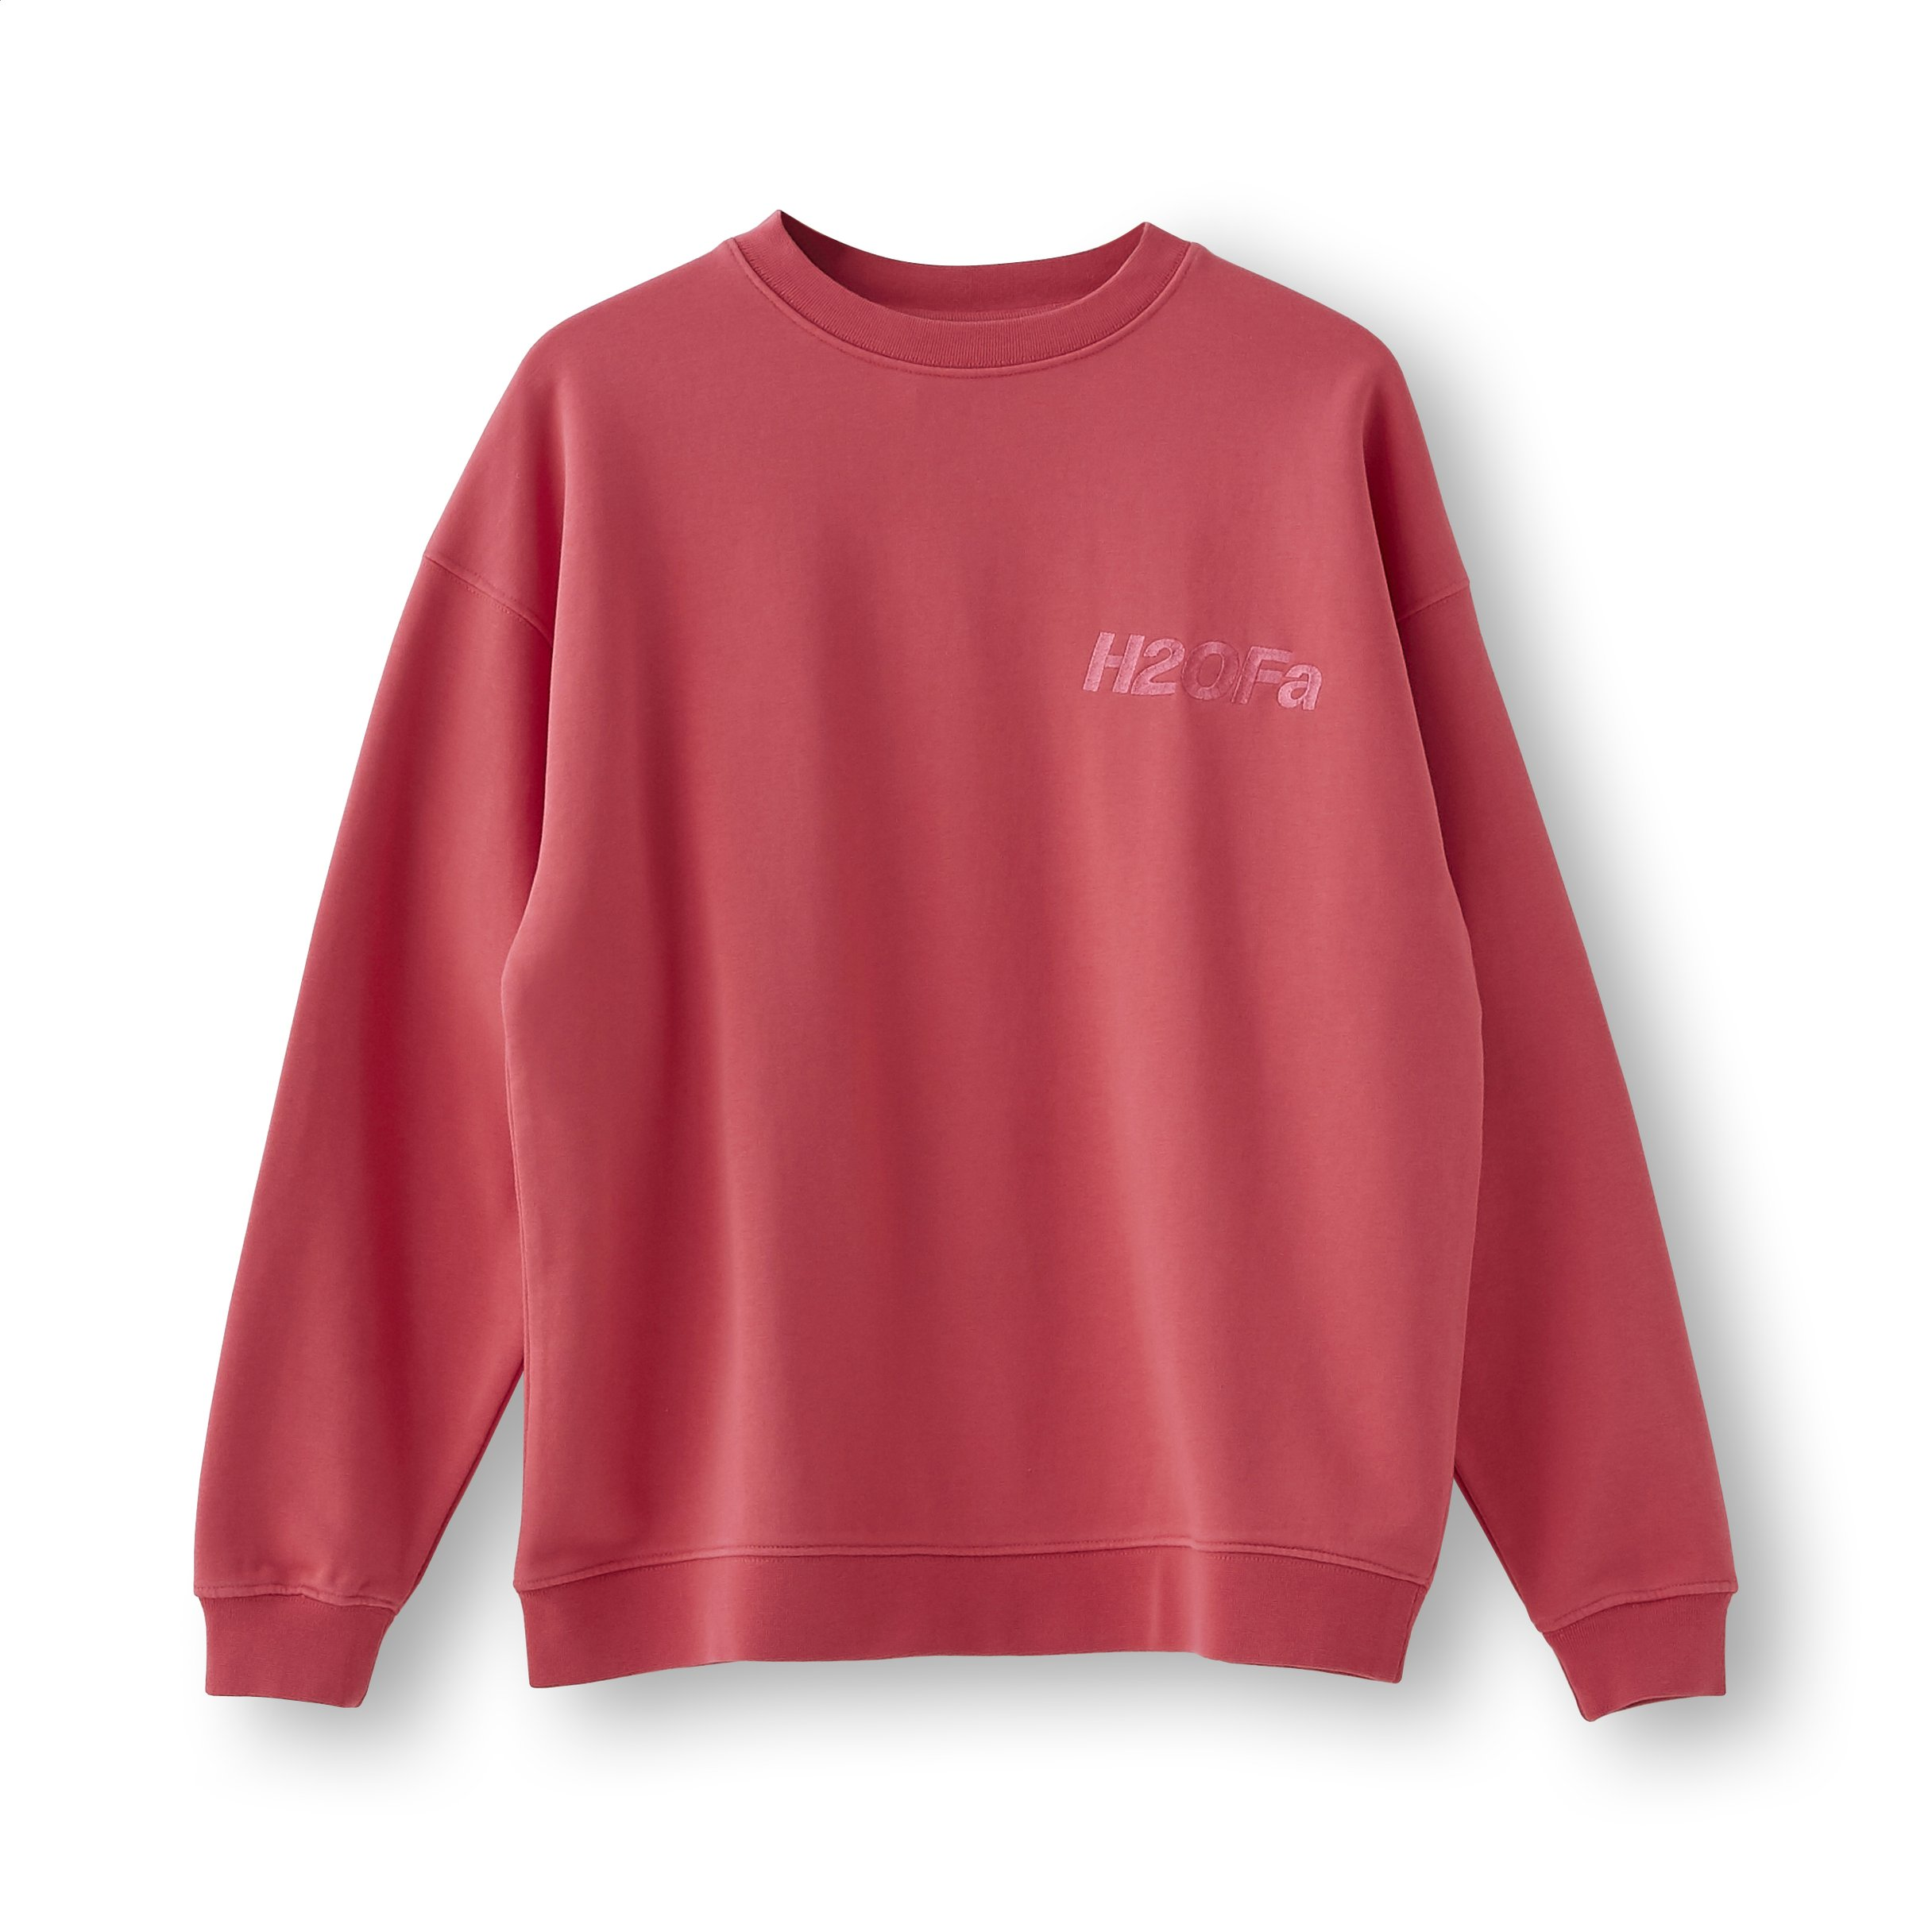 Cream Doctor Sweat - Raspberry by H2ofagerholt, available on h2ofagerholt.com for $120 Selena Gomez Top Exact Product